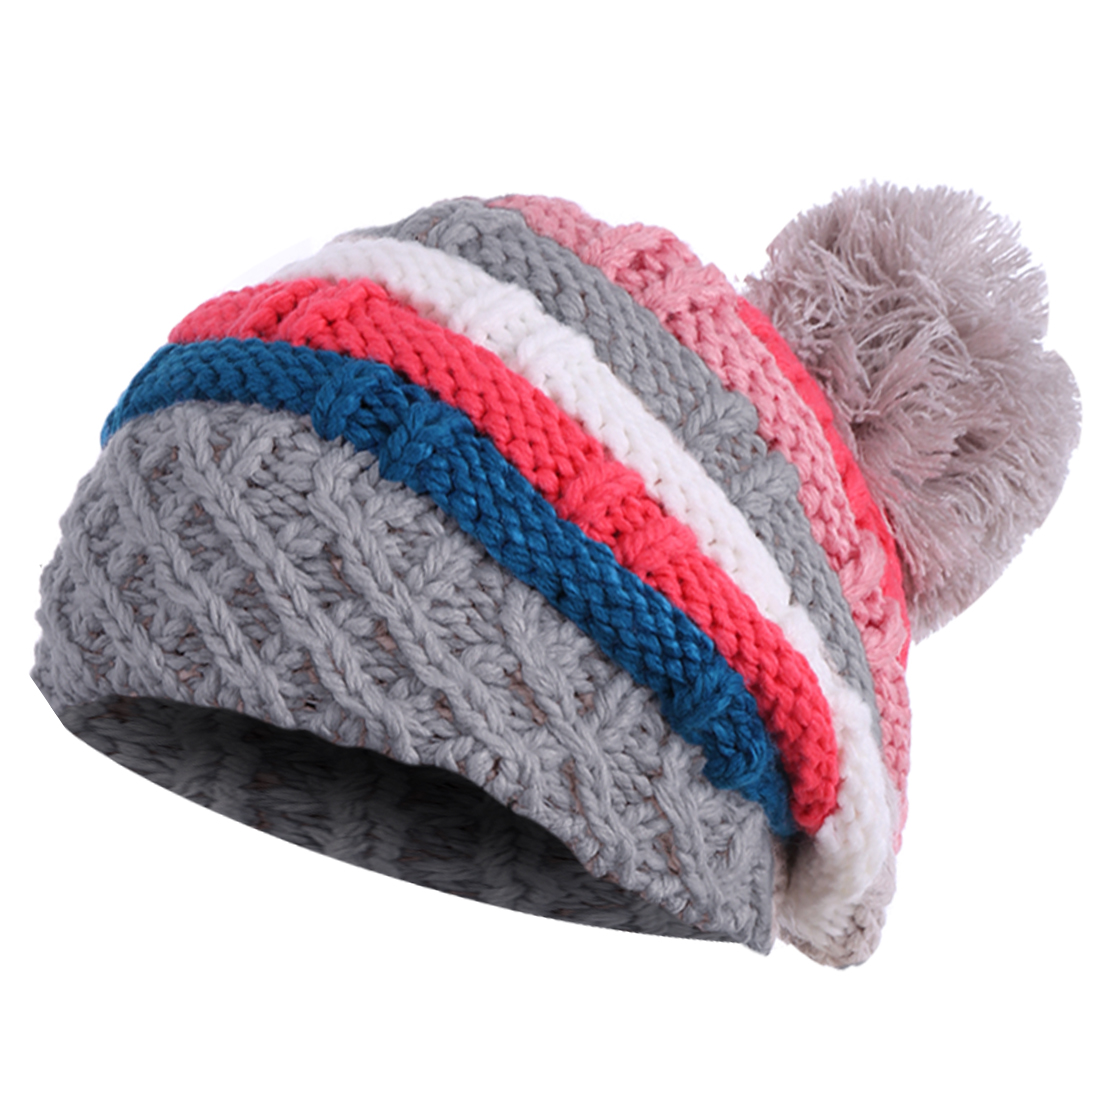 Stylish Dark Gray Red Colorful Striped Winter Knitted Hat for Lady